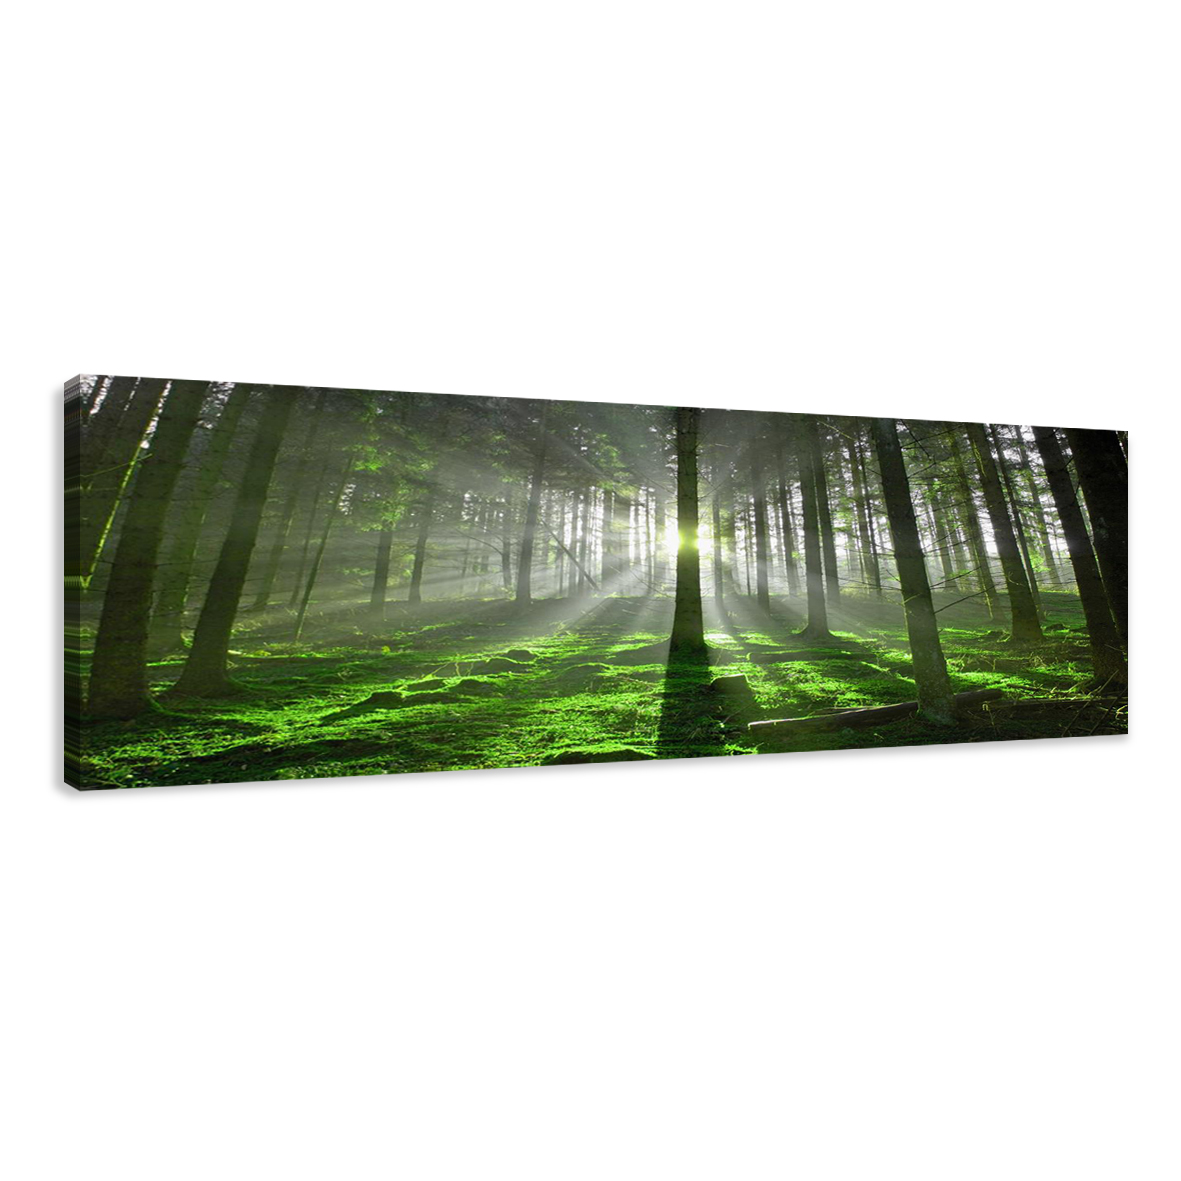 leinwand wandbilder bild wald licht b ume verschiedene gr en kunstdruck 1513 d1 ebay. Black Bedroom Furniture Sets. Home Design Ideas